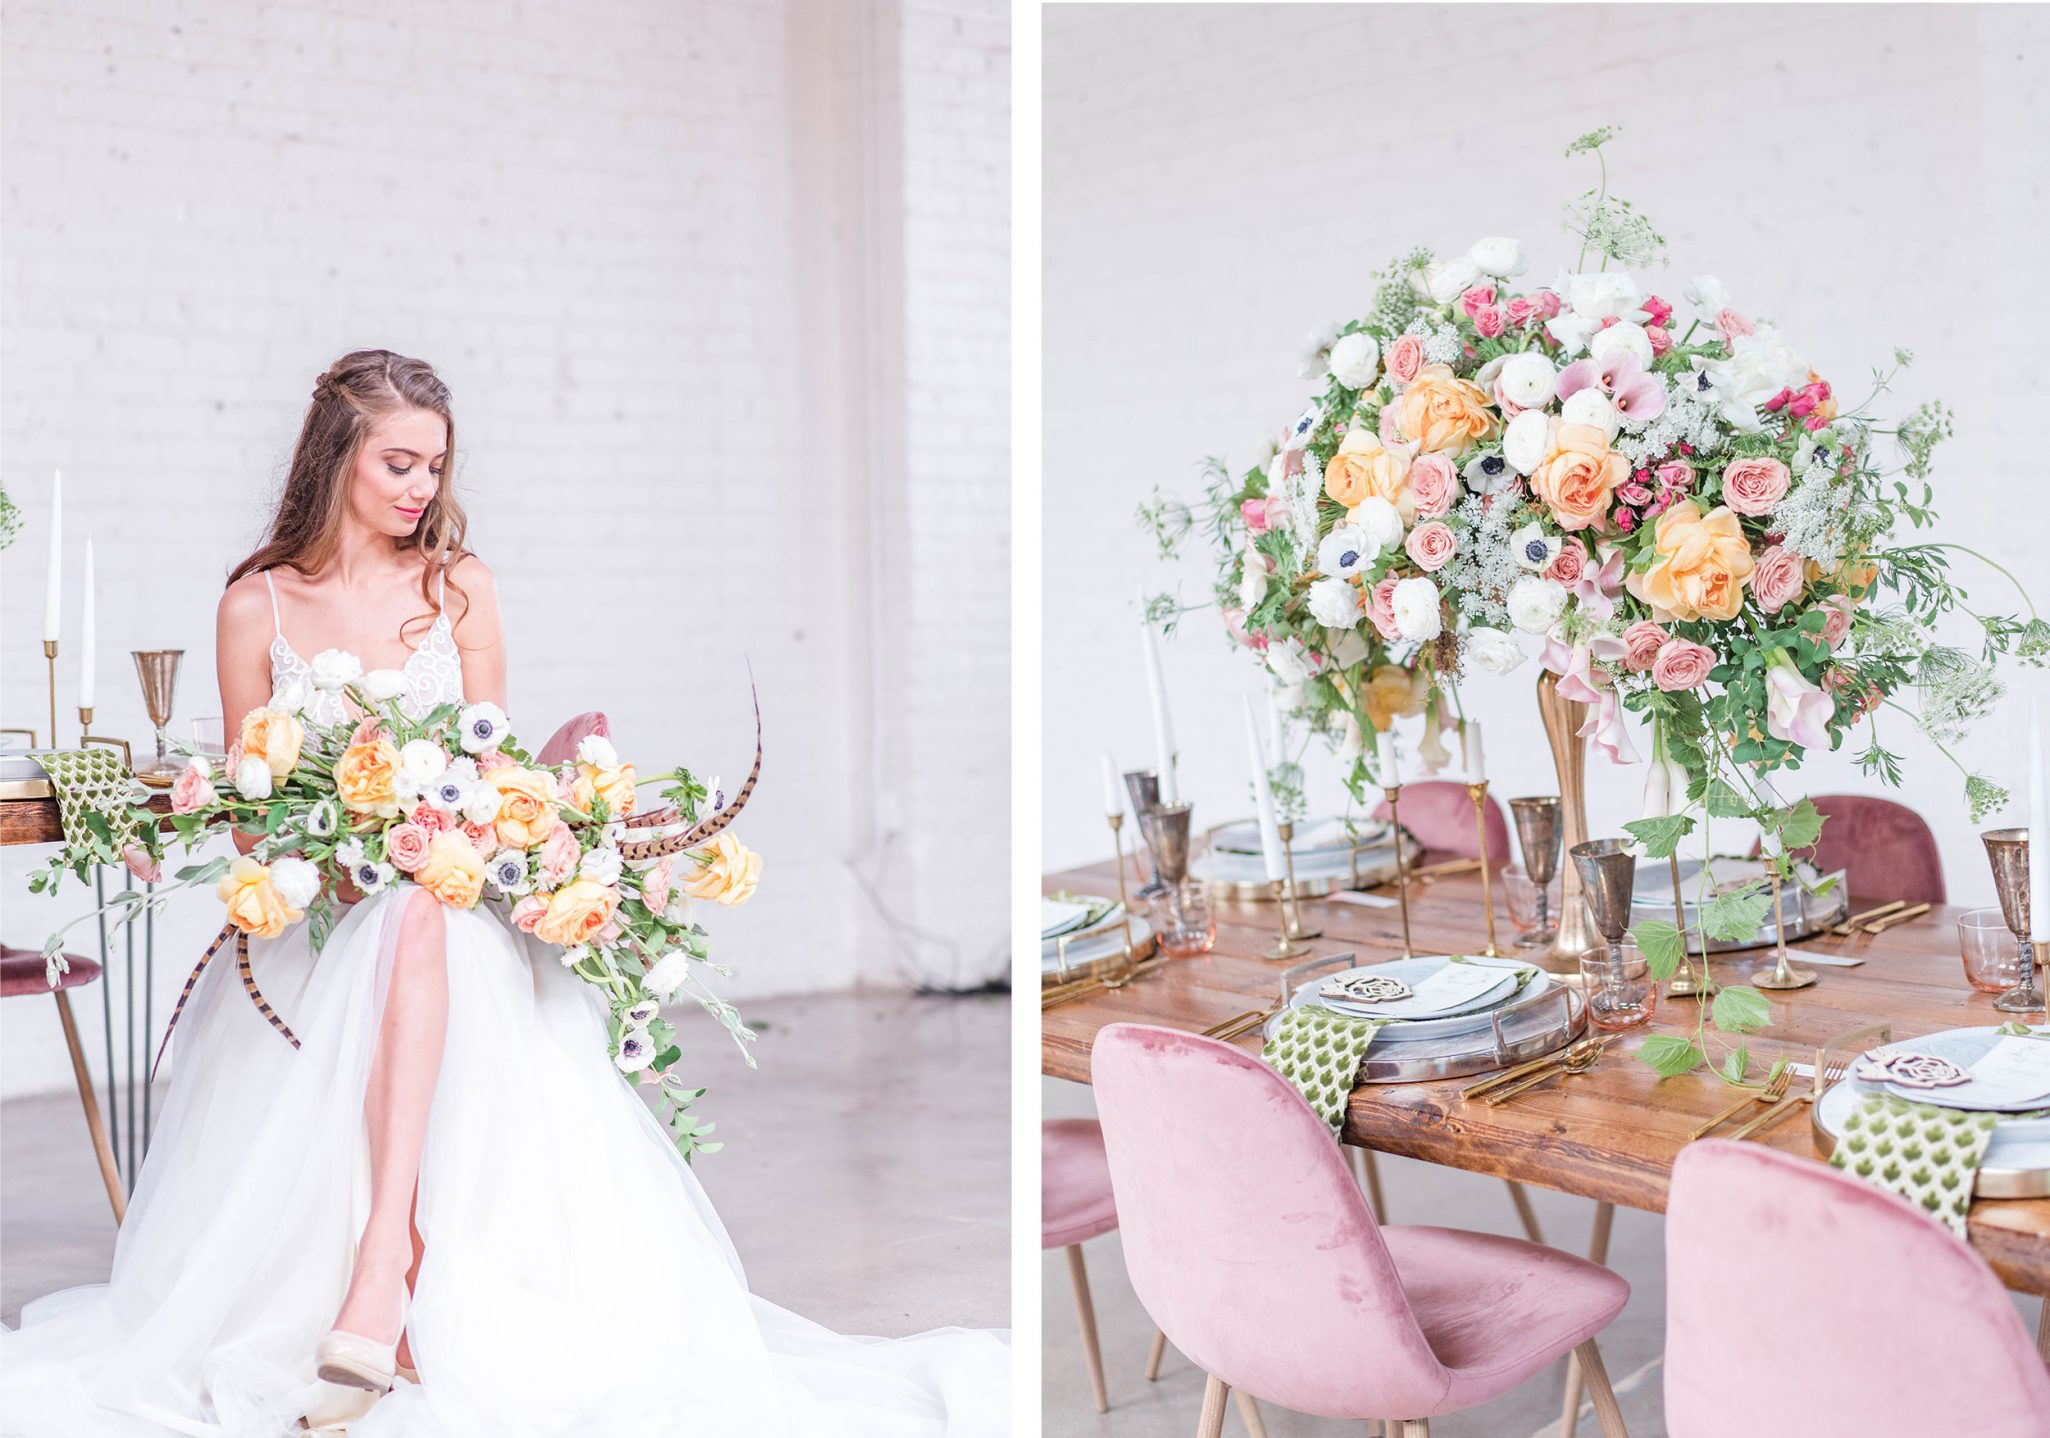 Wedding Florals | A Pretty Bridal Editorial, Denver Colorado